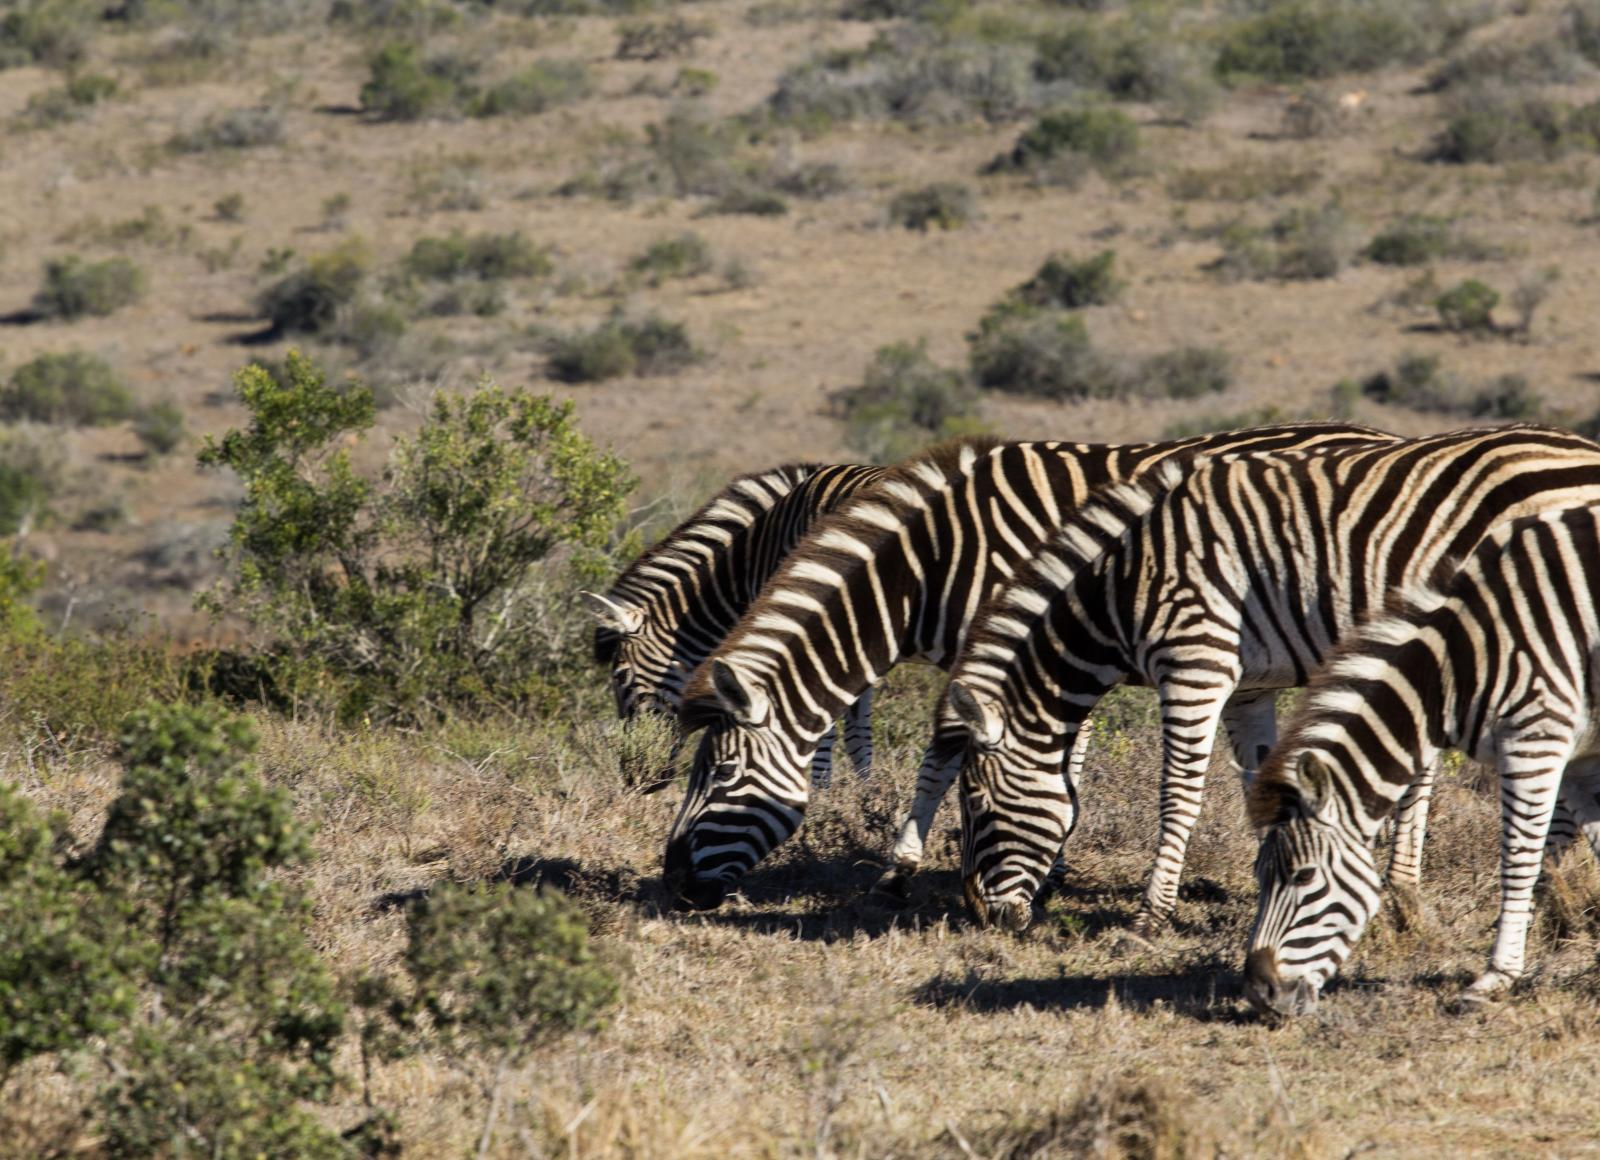 Zebras graze at the Schotia Private Reserves in Port Elizabeth, South Africa.